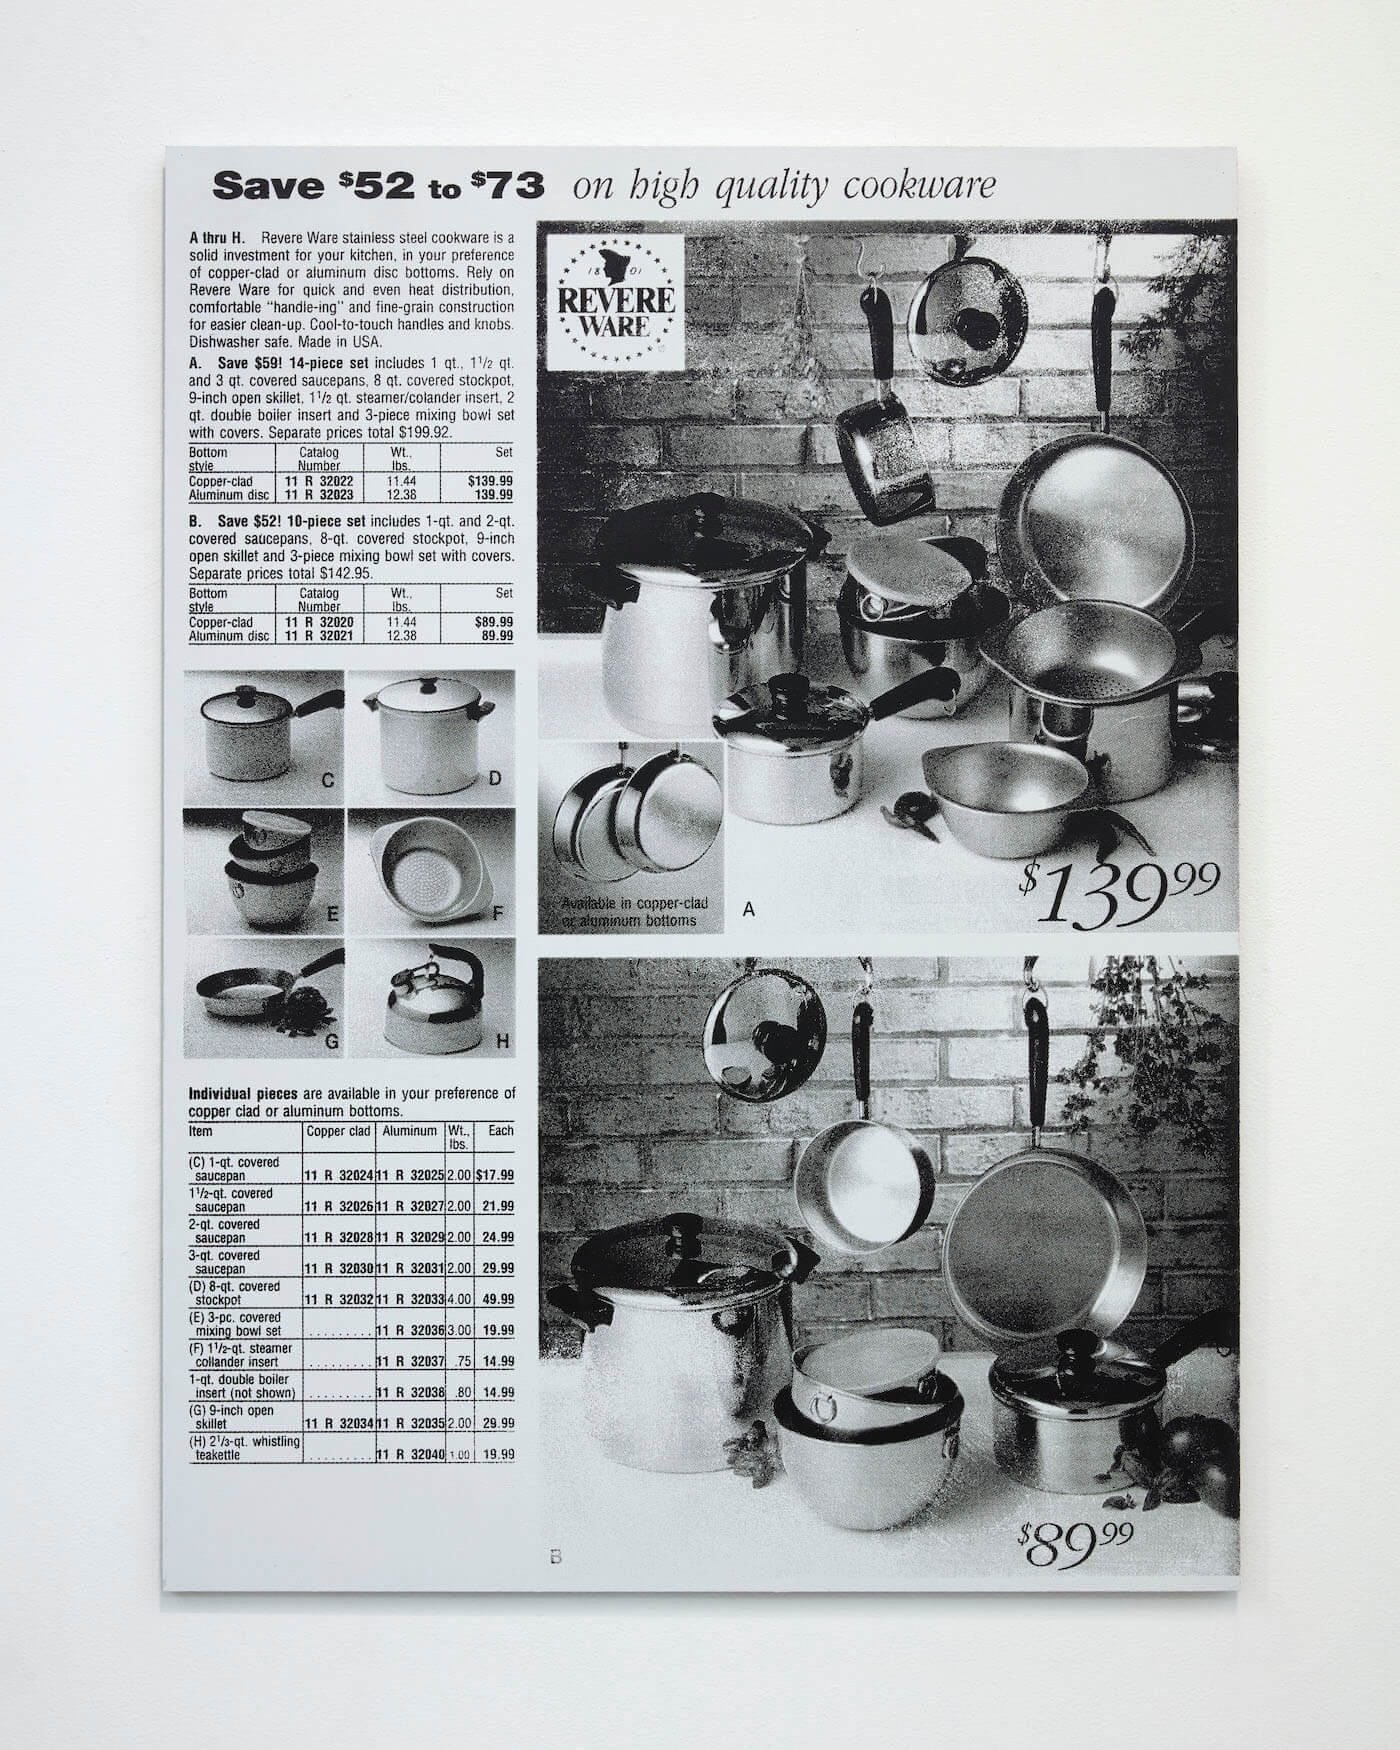 Jackson, Pots and Pans, 2020 (PJ 20.007) A